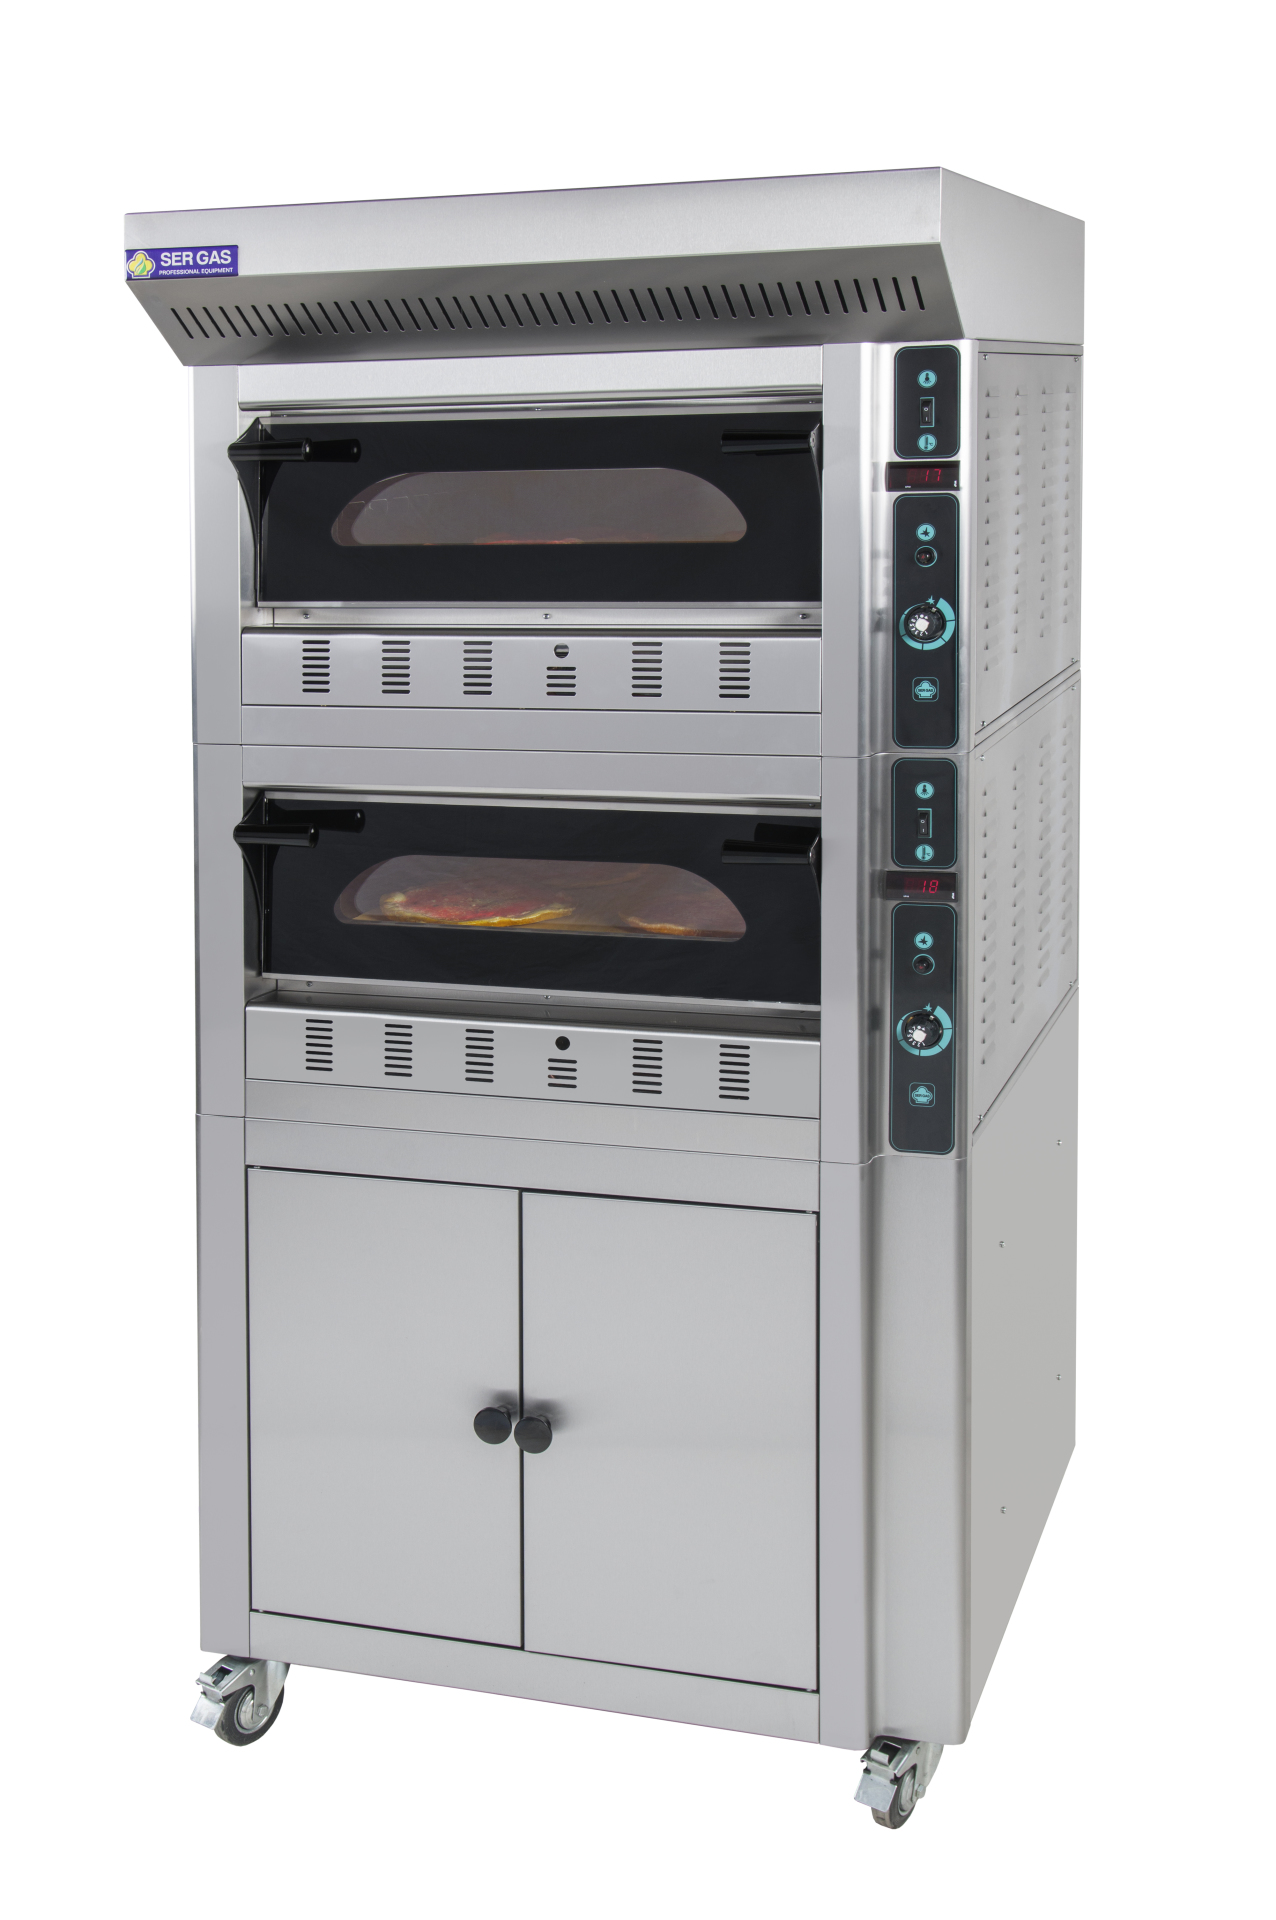 Podstawa pod piec 120x90x80cm dla ZG6D The base for pizza oven 120x90x80cm for ZG6D Cena netto:1.097,00